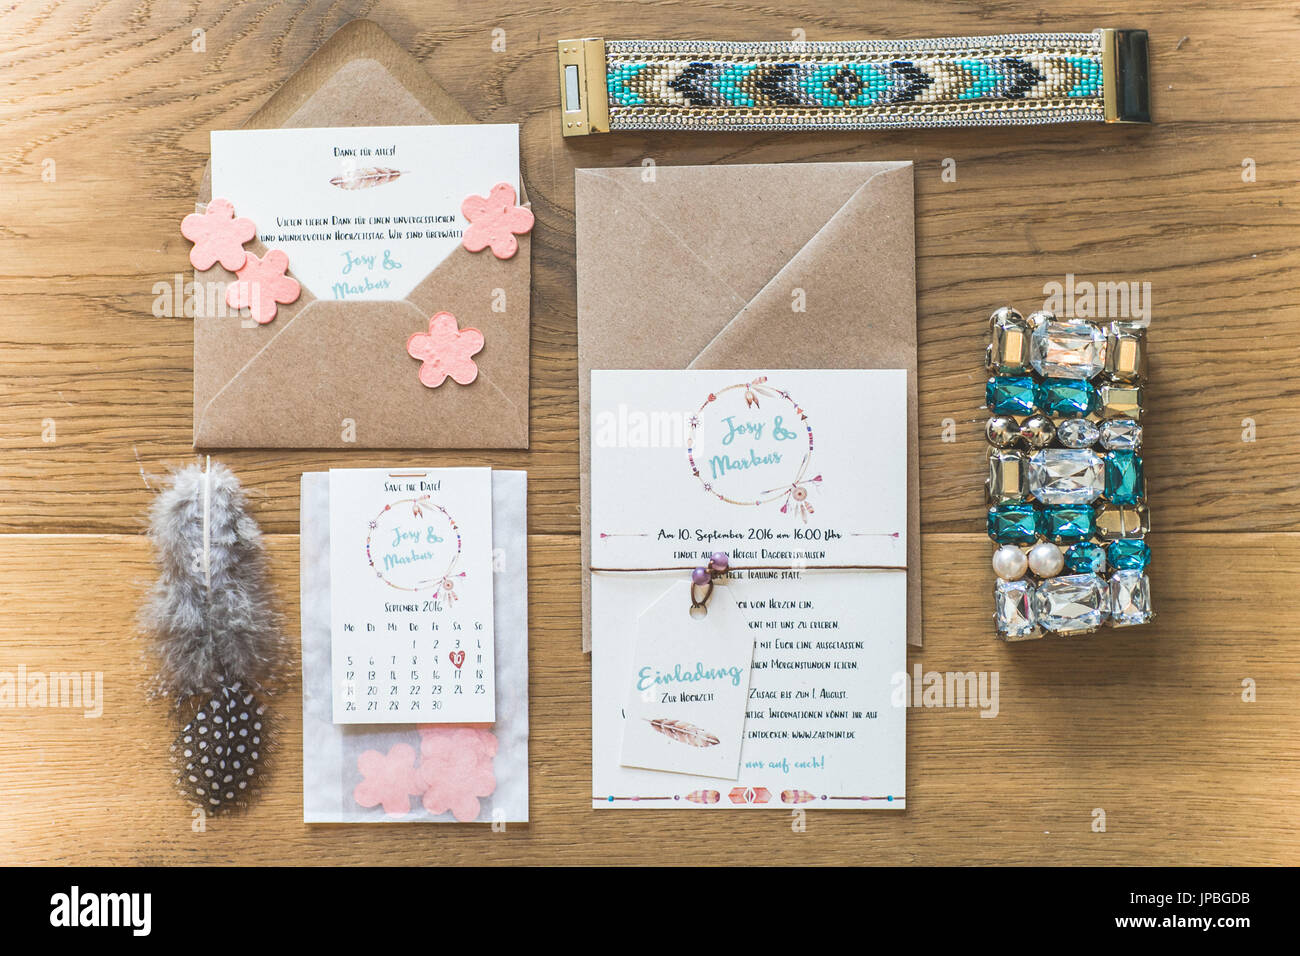 Invitation Cards And Symbols To An Indian Wedding Stock Photo